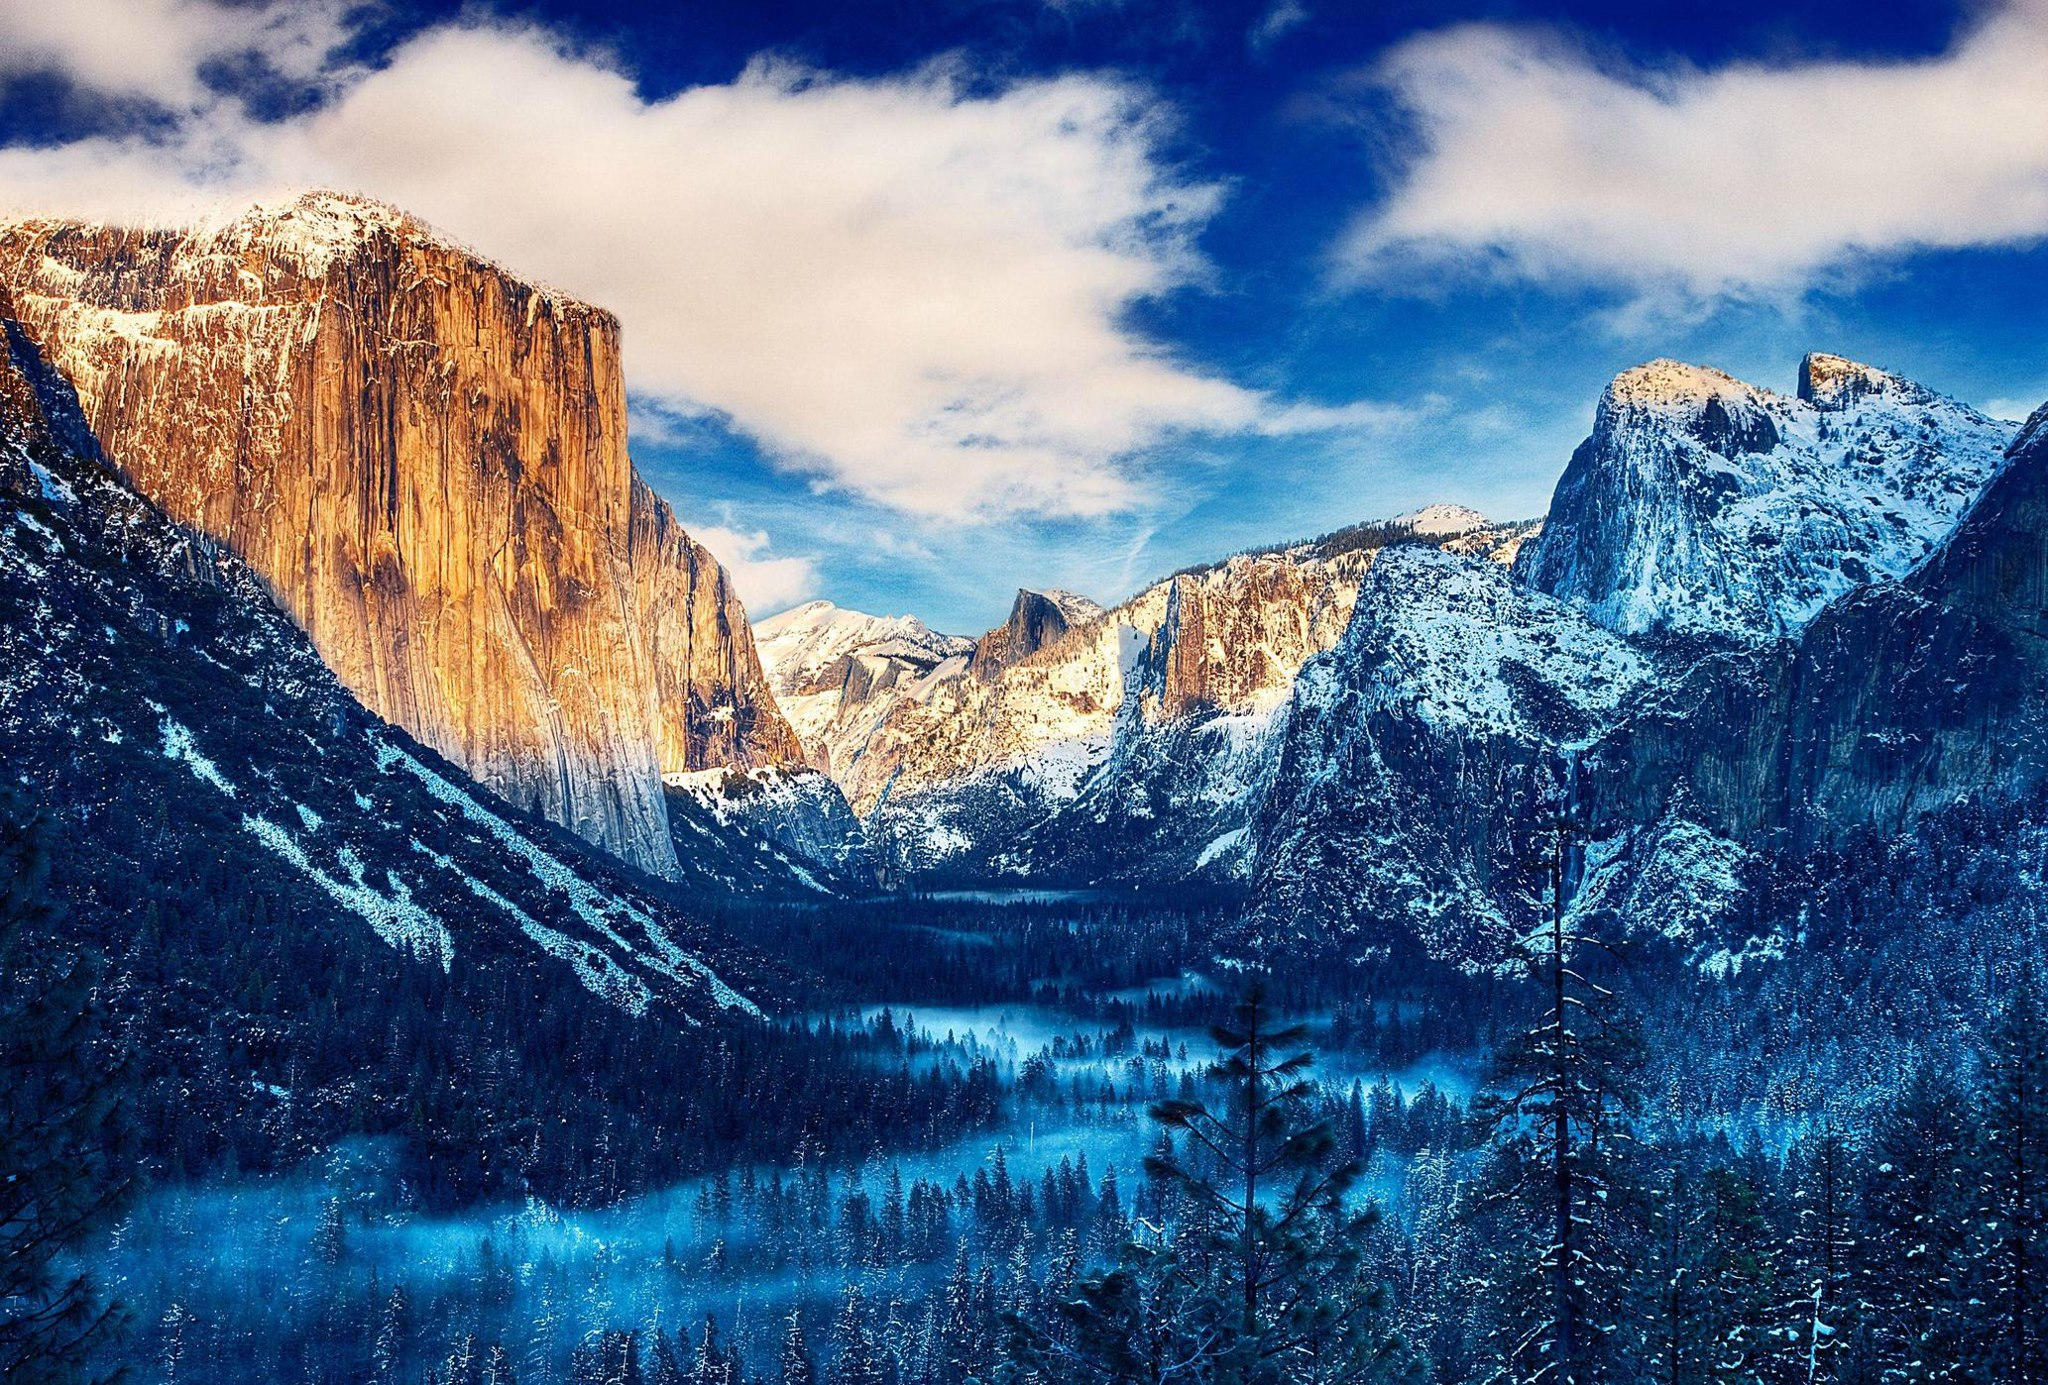 Climbing Yosemite Valley & El Cap